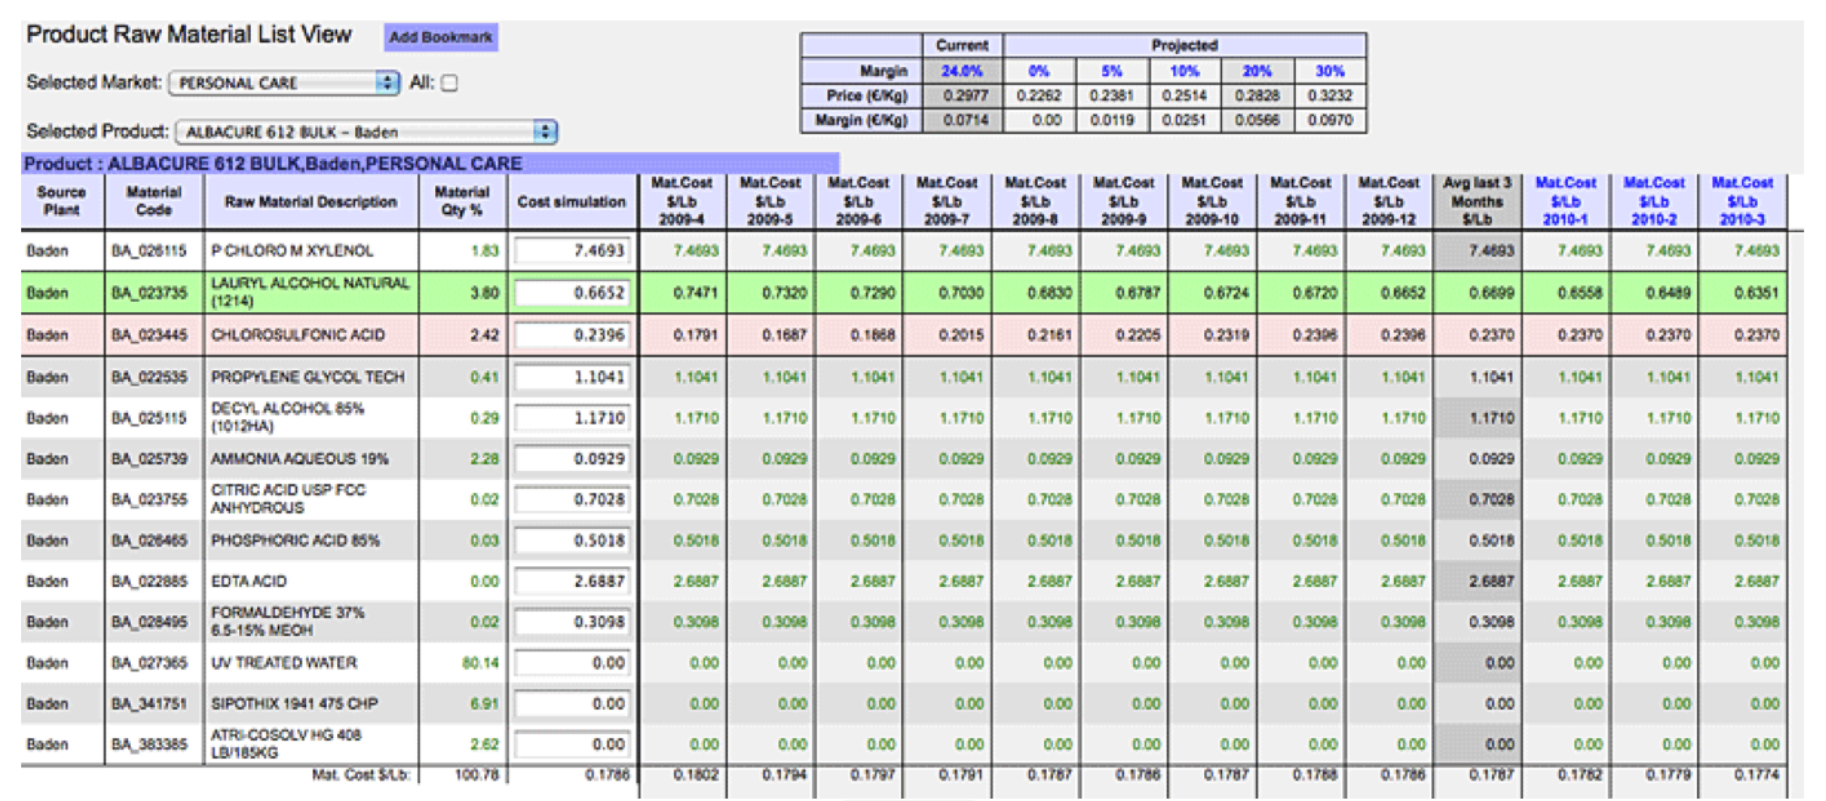 Product Pricing Spreadsheet Throughout Product Pricing Spreadsheet  Aljererlotgd